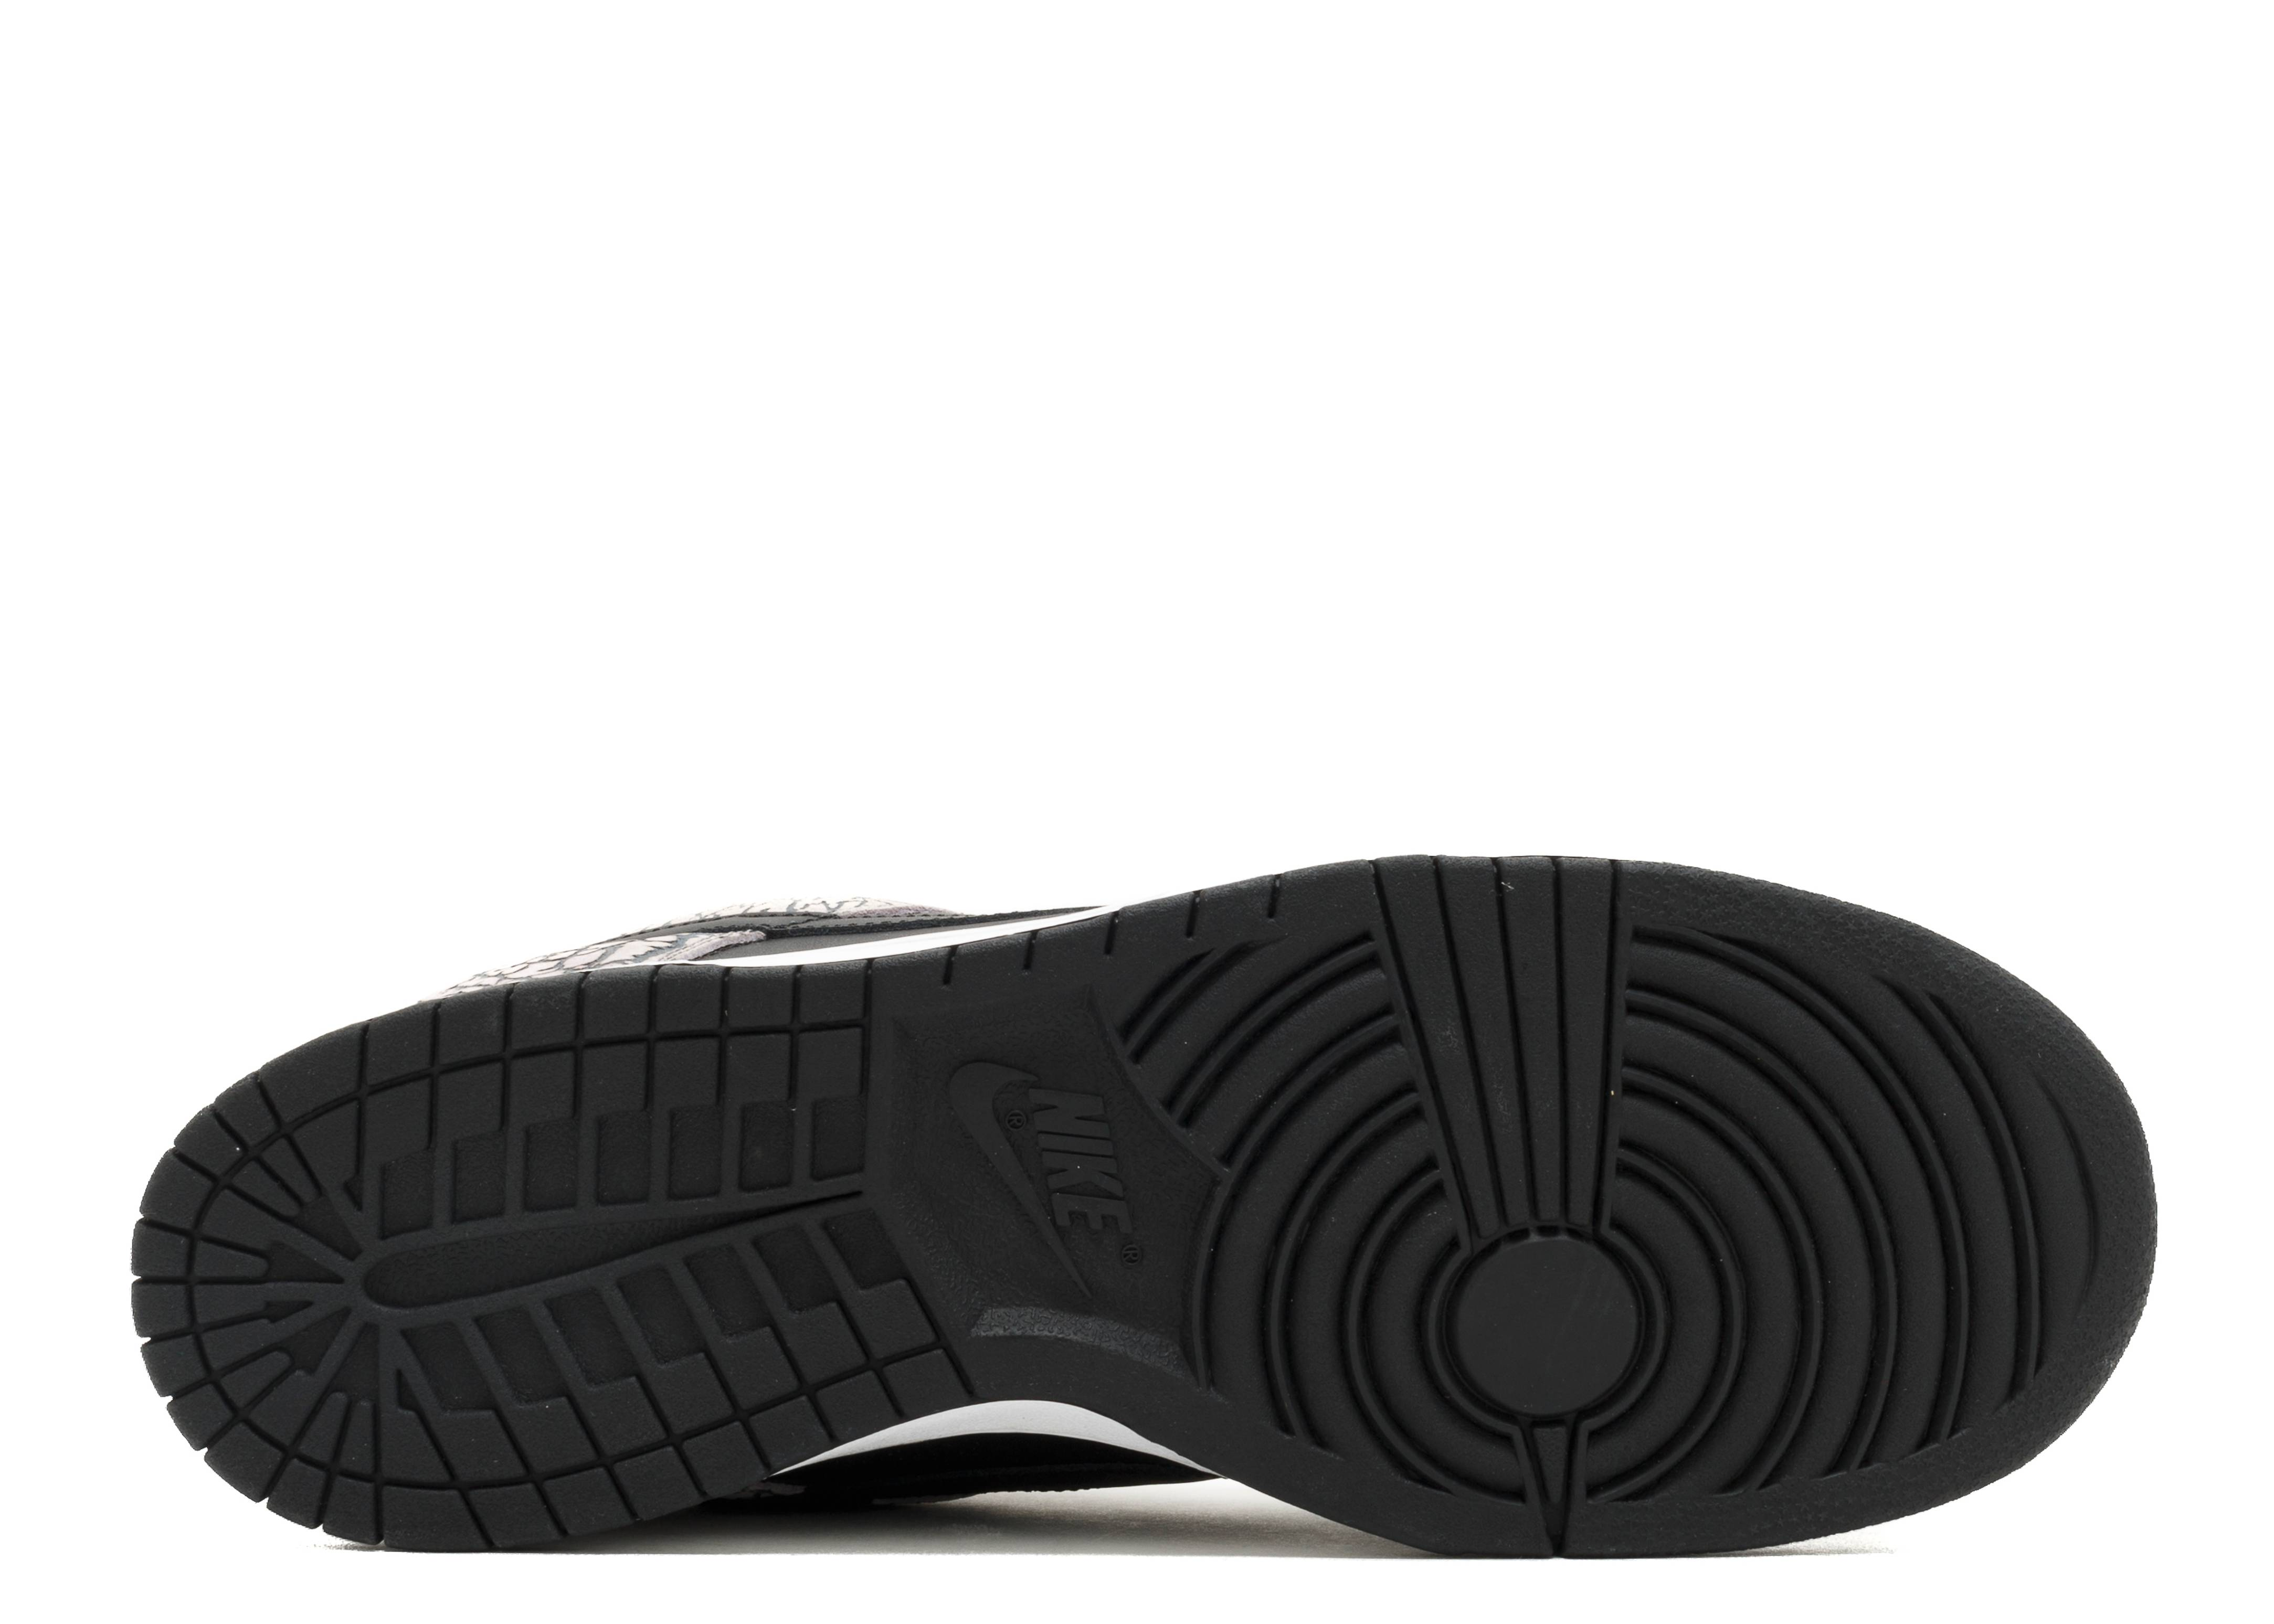 on wholesale details for best quality Nike Dunk Low Pro Sb